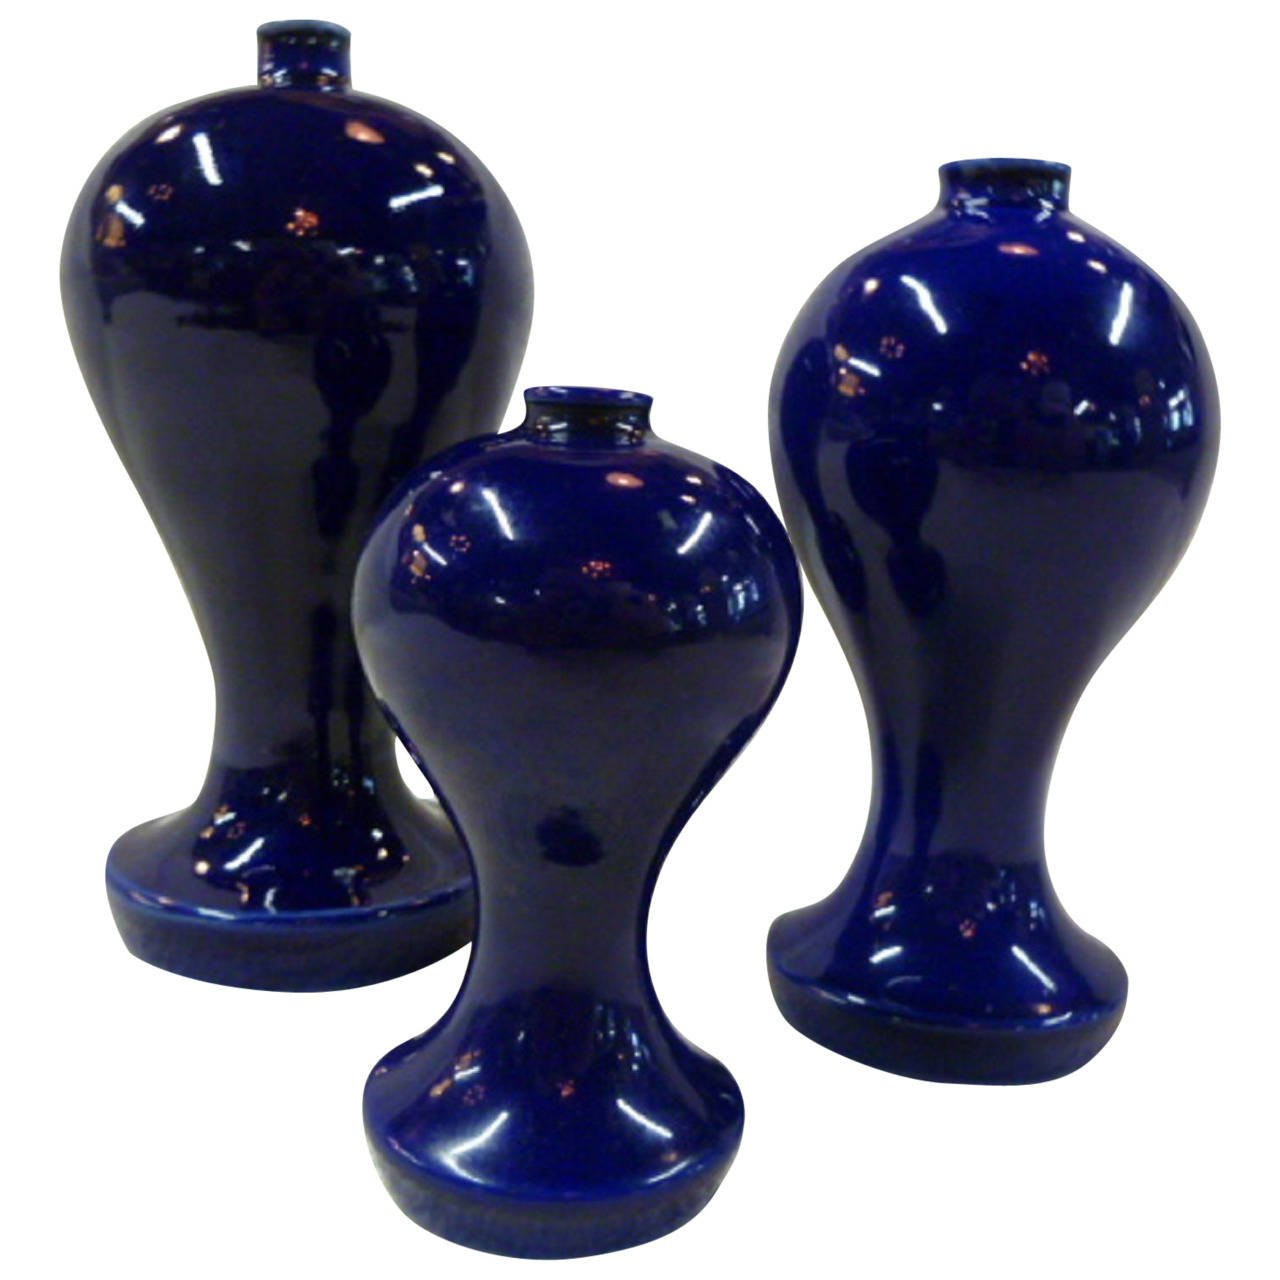 25 Fabulous Correia Art Glass Vase